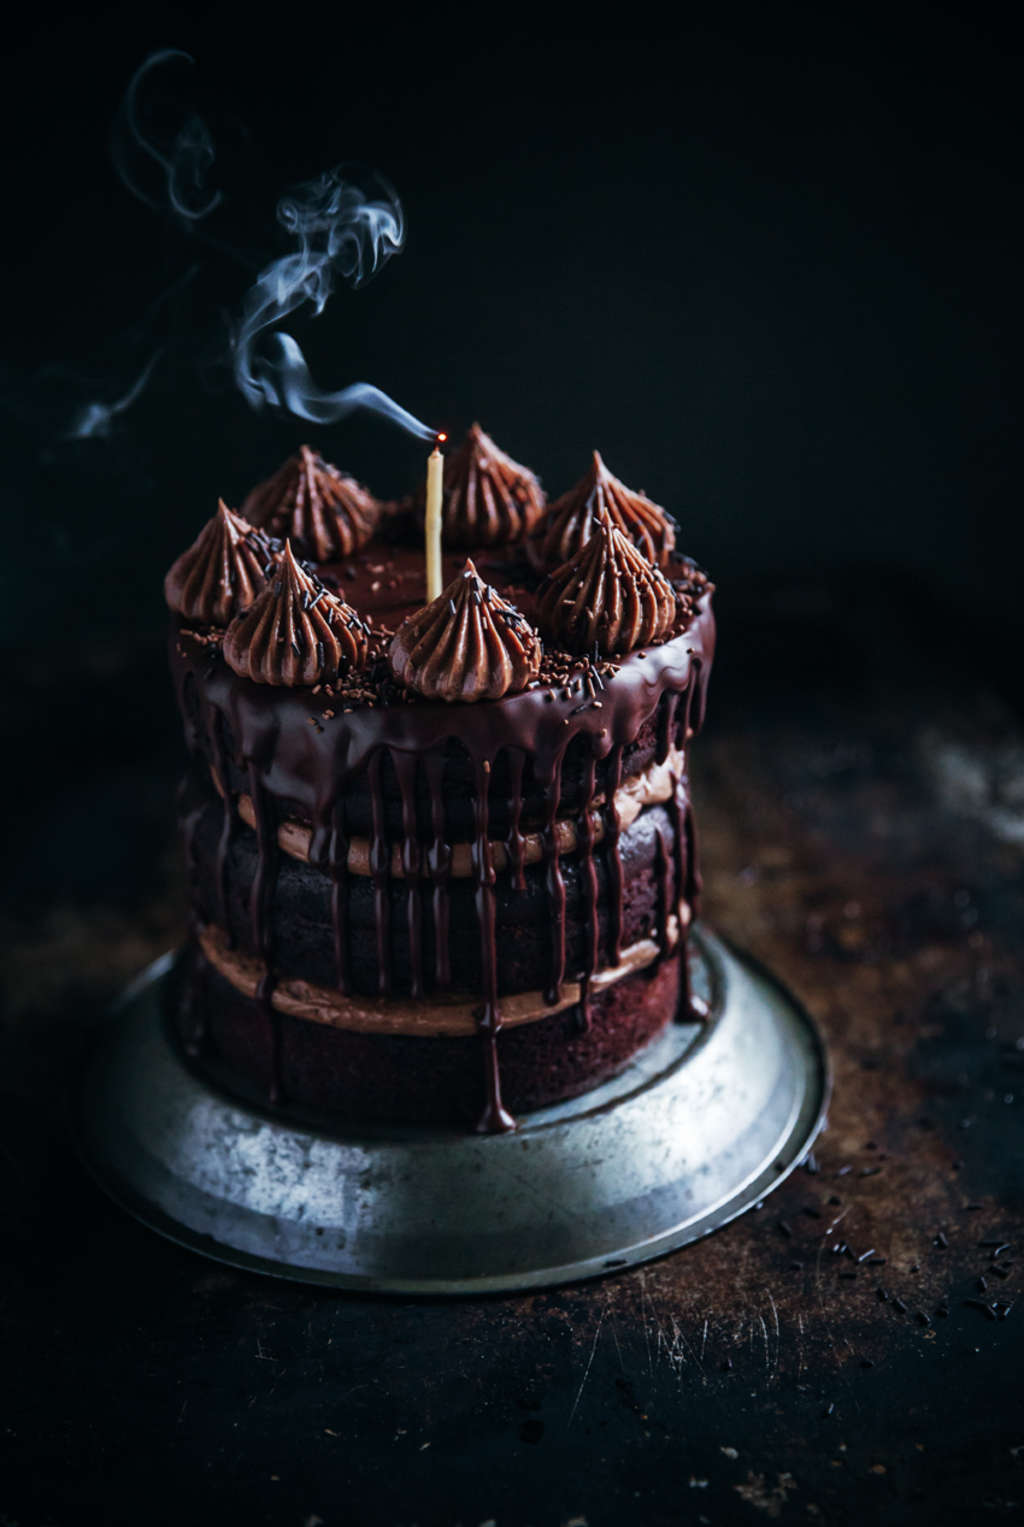 The Ultimate Chocolate Cake for True Chocoholics